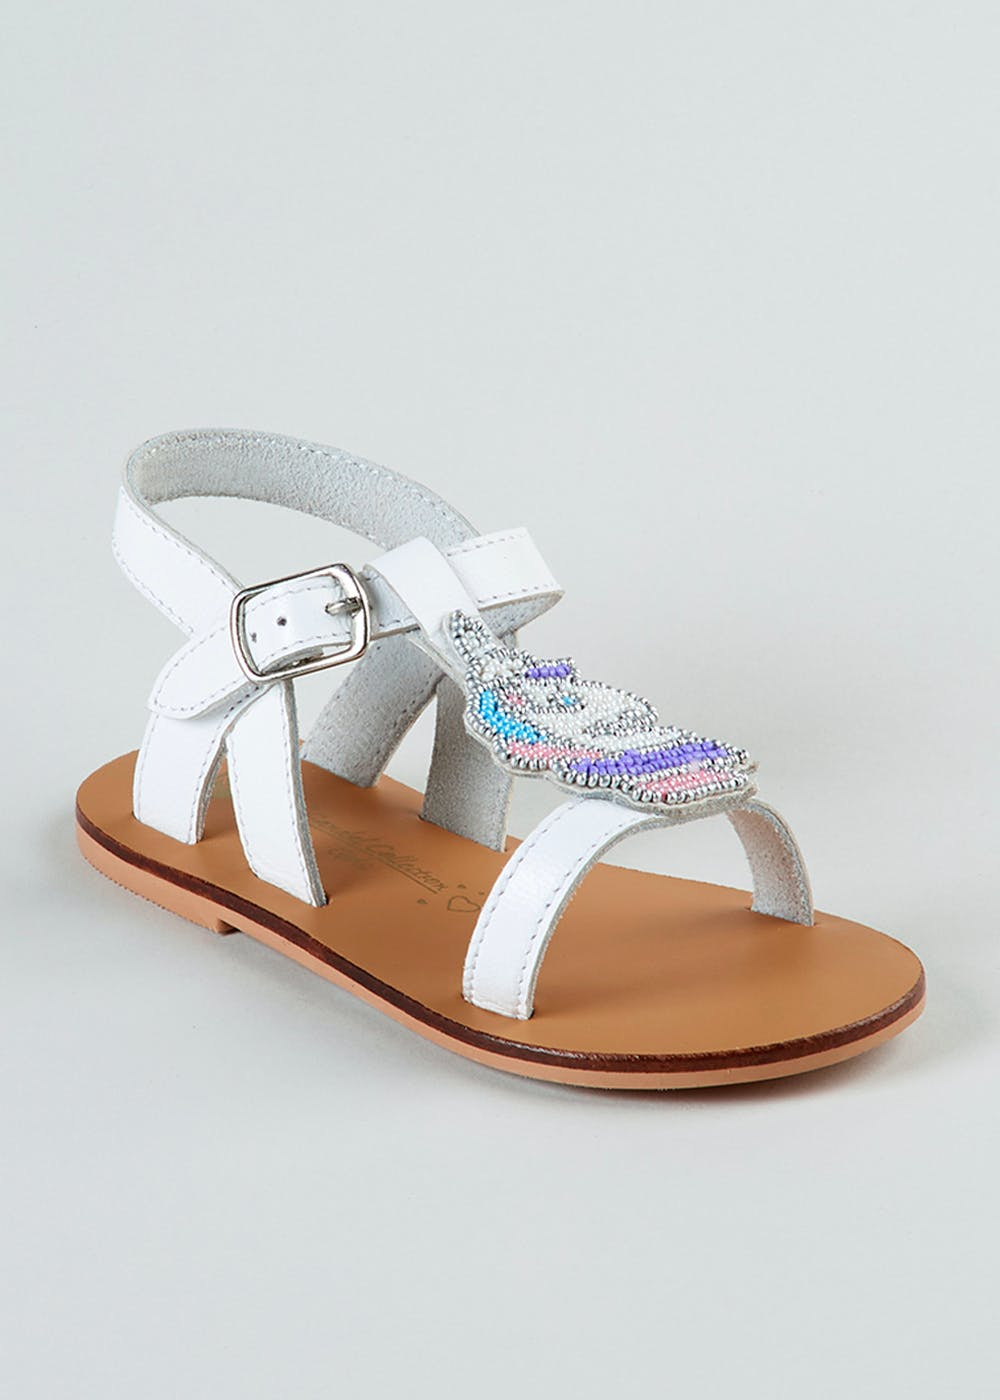 Girls Real Leather Unicorn Sandals